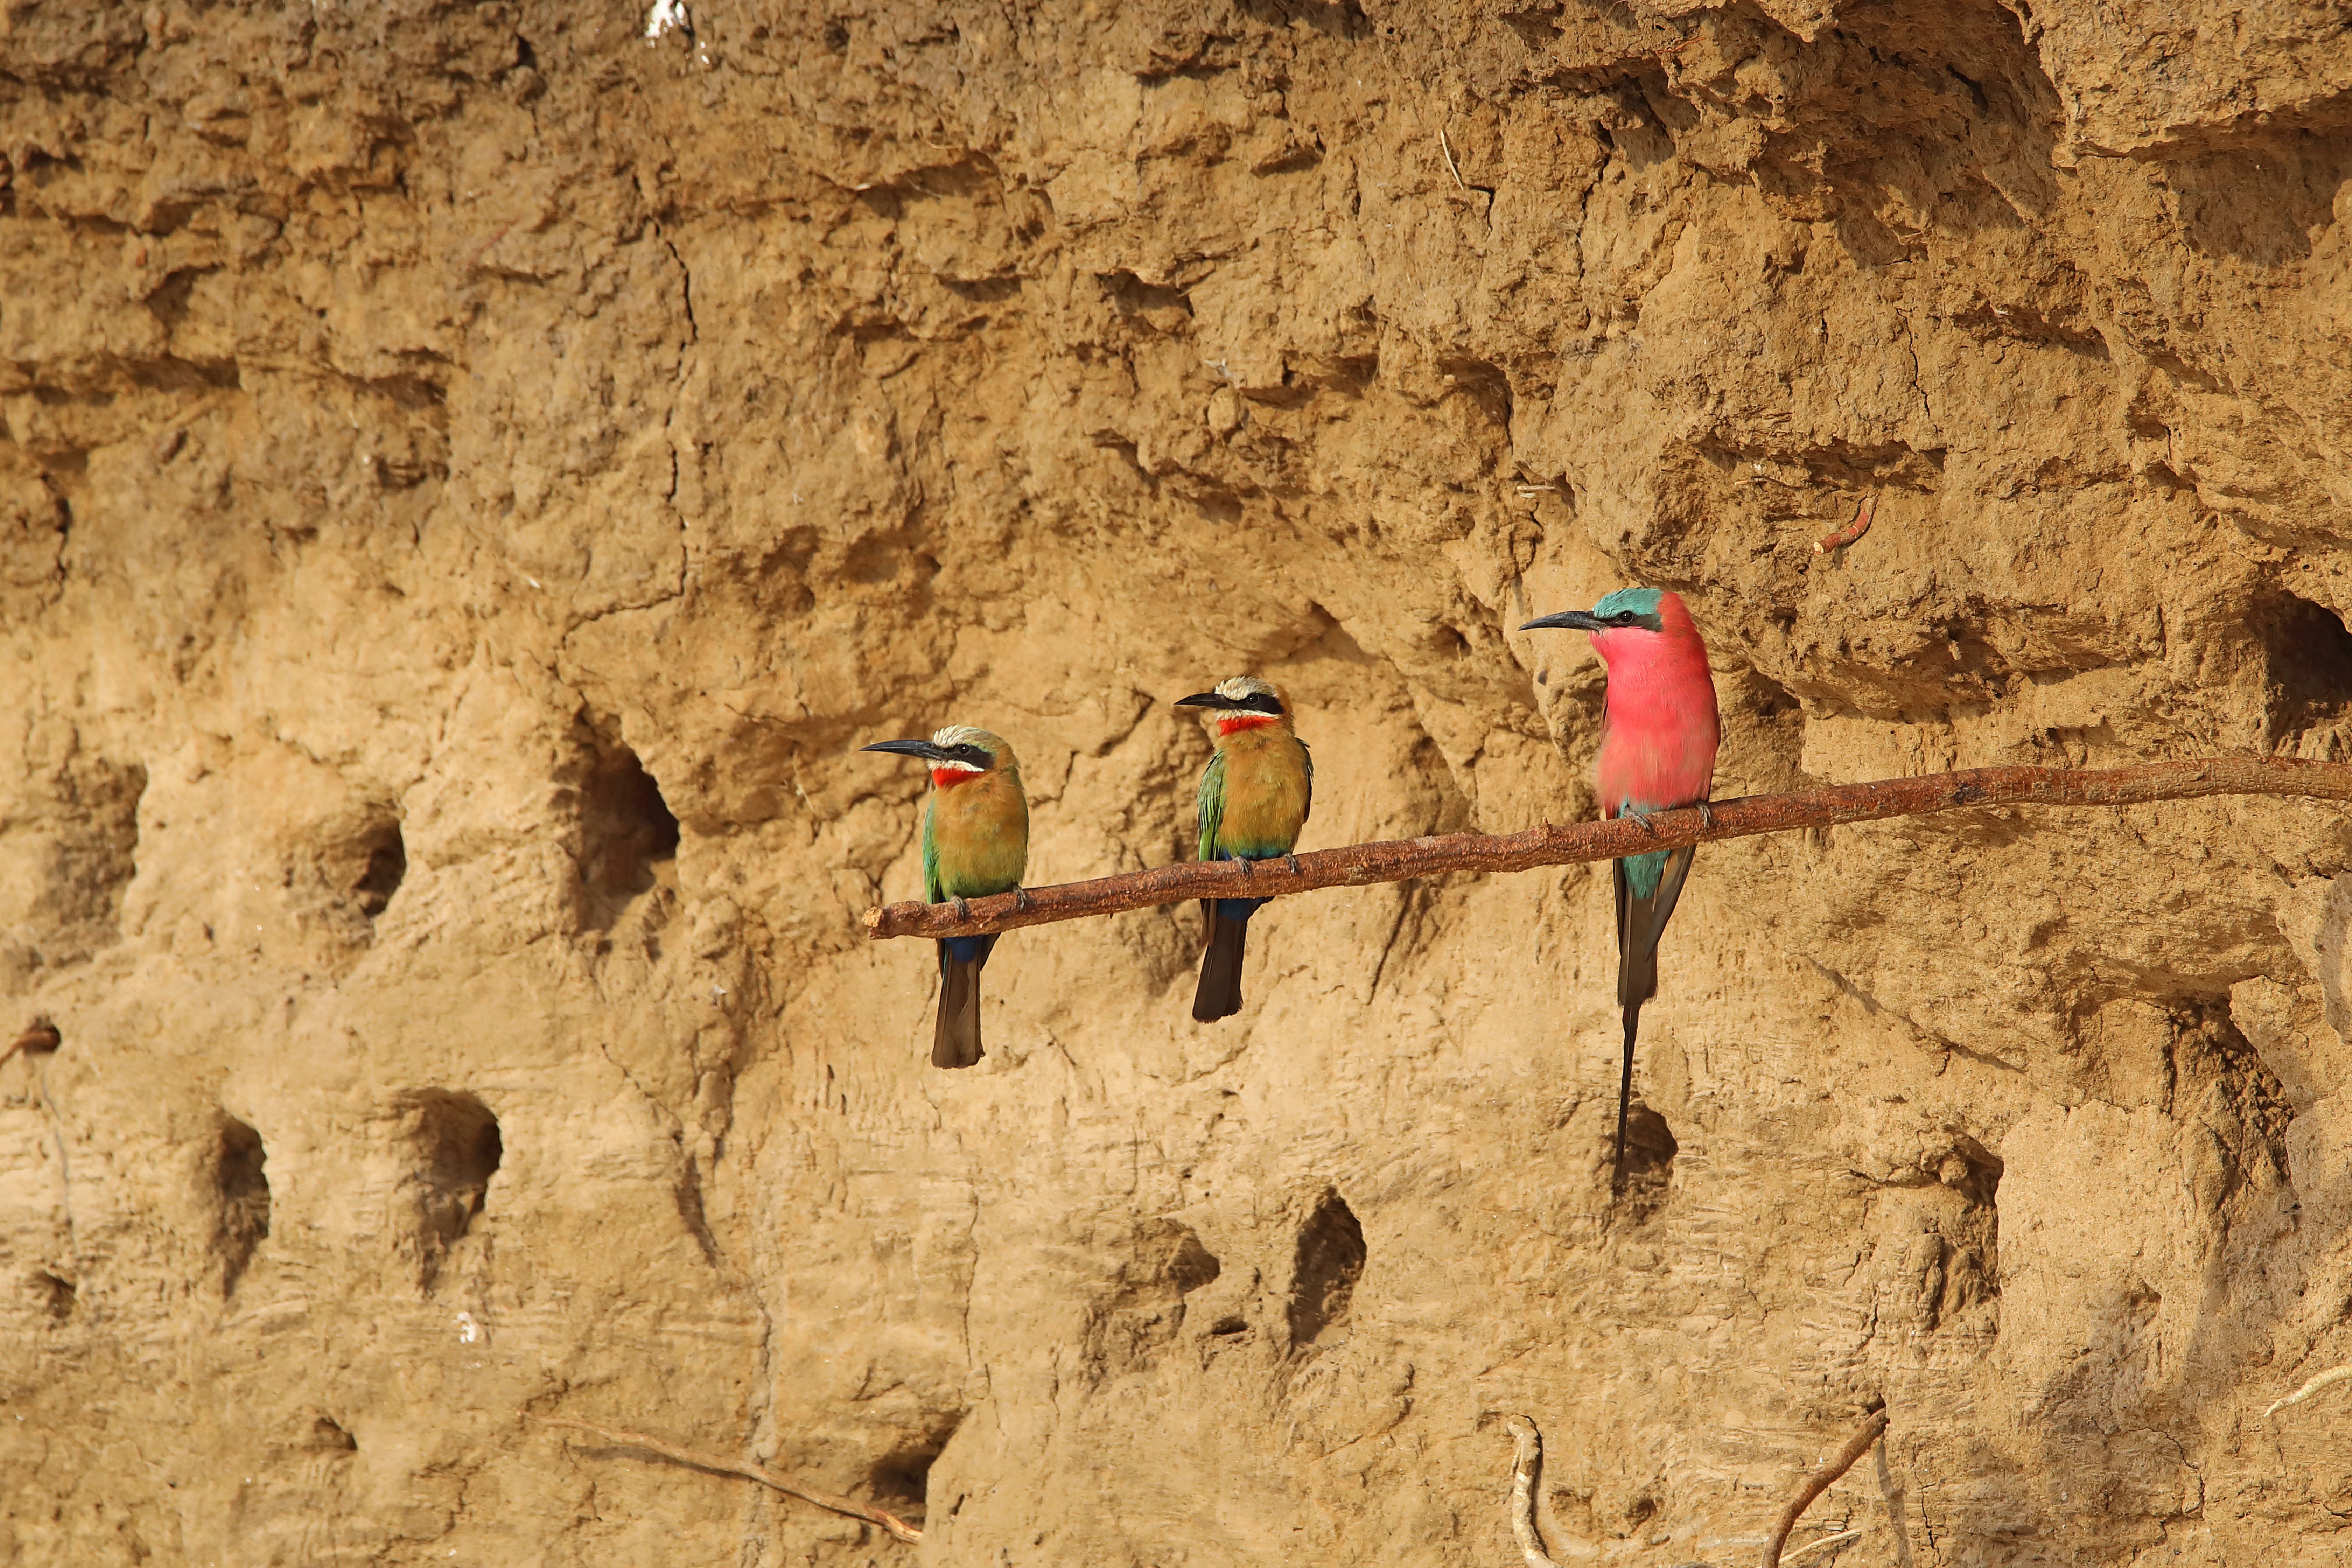 White-fronted bee-eaters, Southern Carmine bee-eater